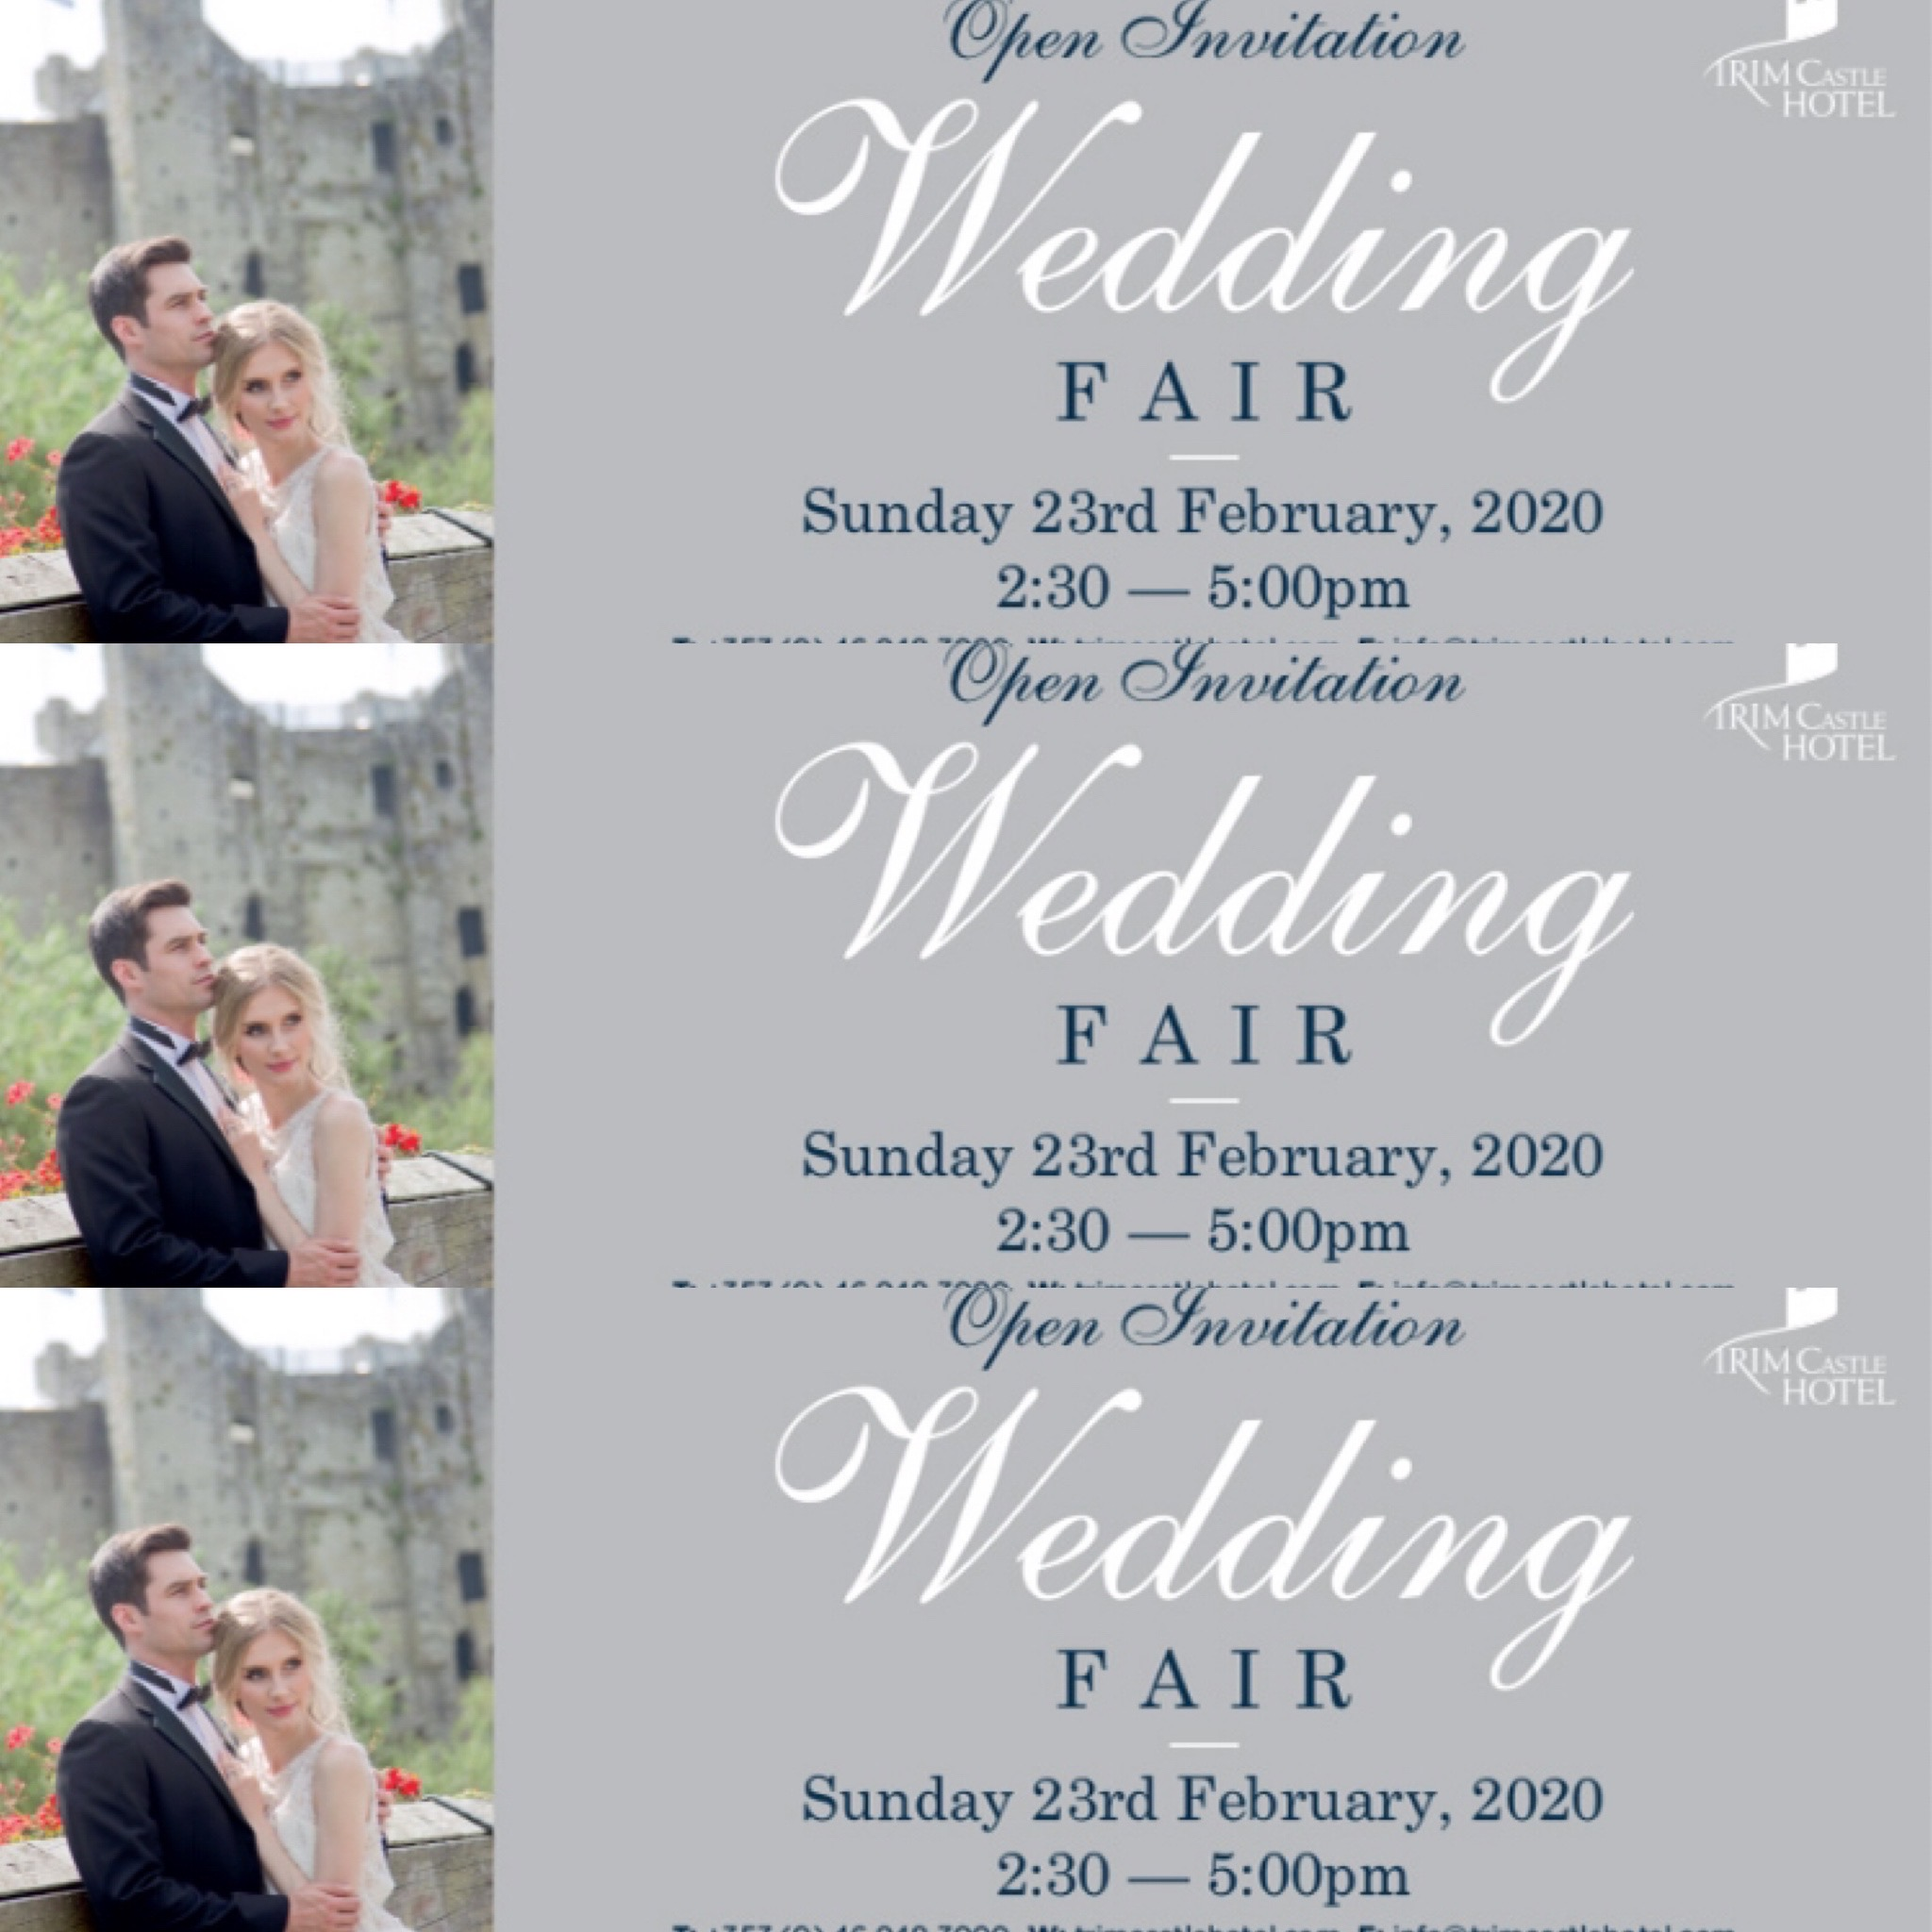 Trim Castle Hotel Wedding Fair 2020